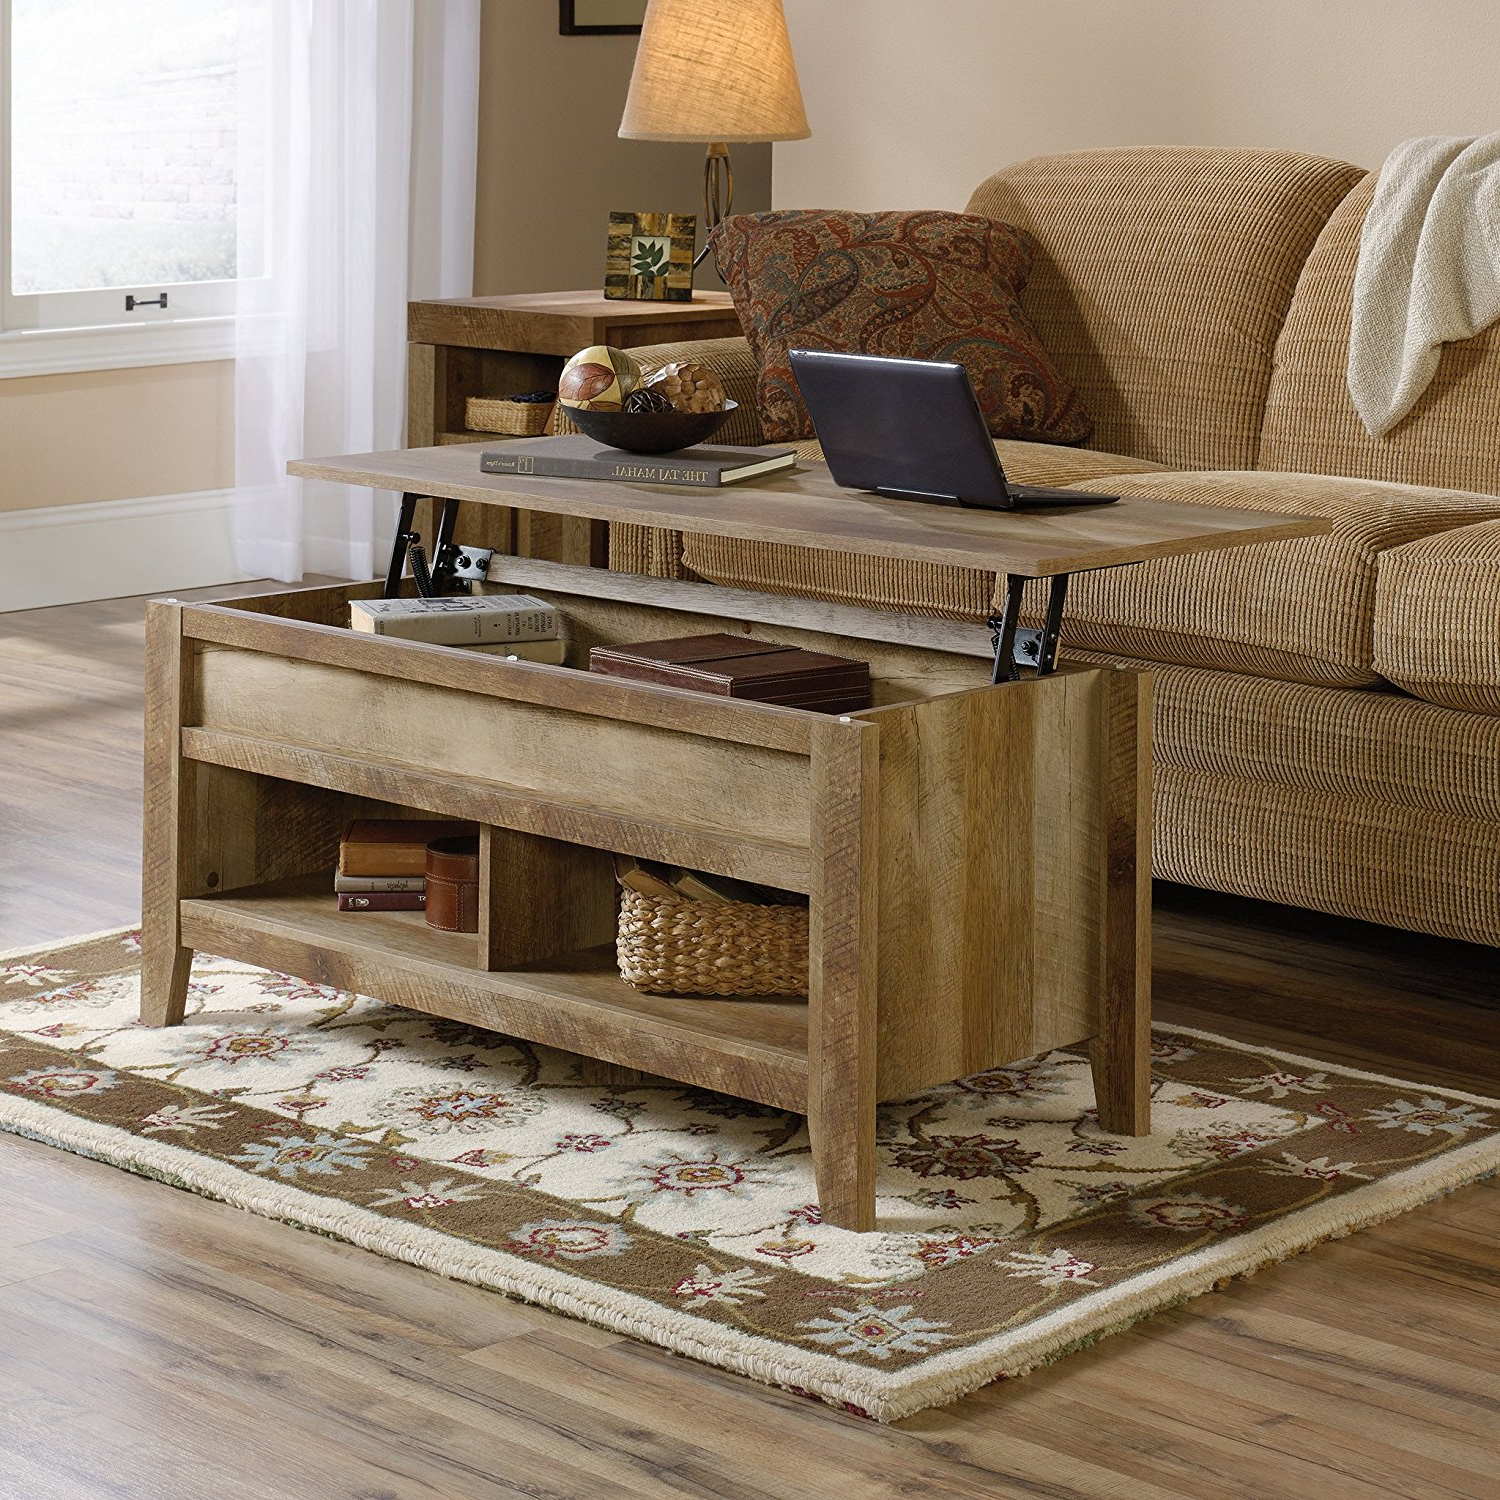 Top 10 Best Lift Top Coffee Tables In 2018 – Toptenreviewpro Intended For Widely Used Market Lift Top Cocktail Tables (View 12 of 20)